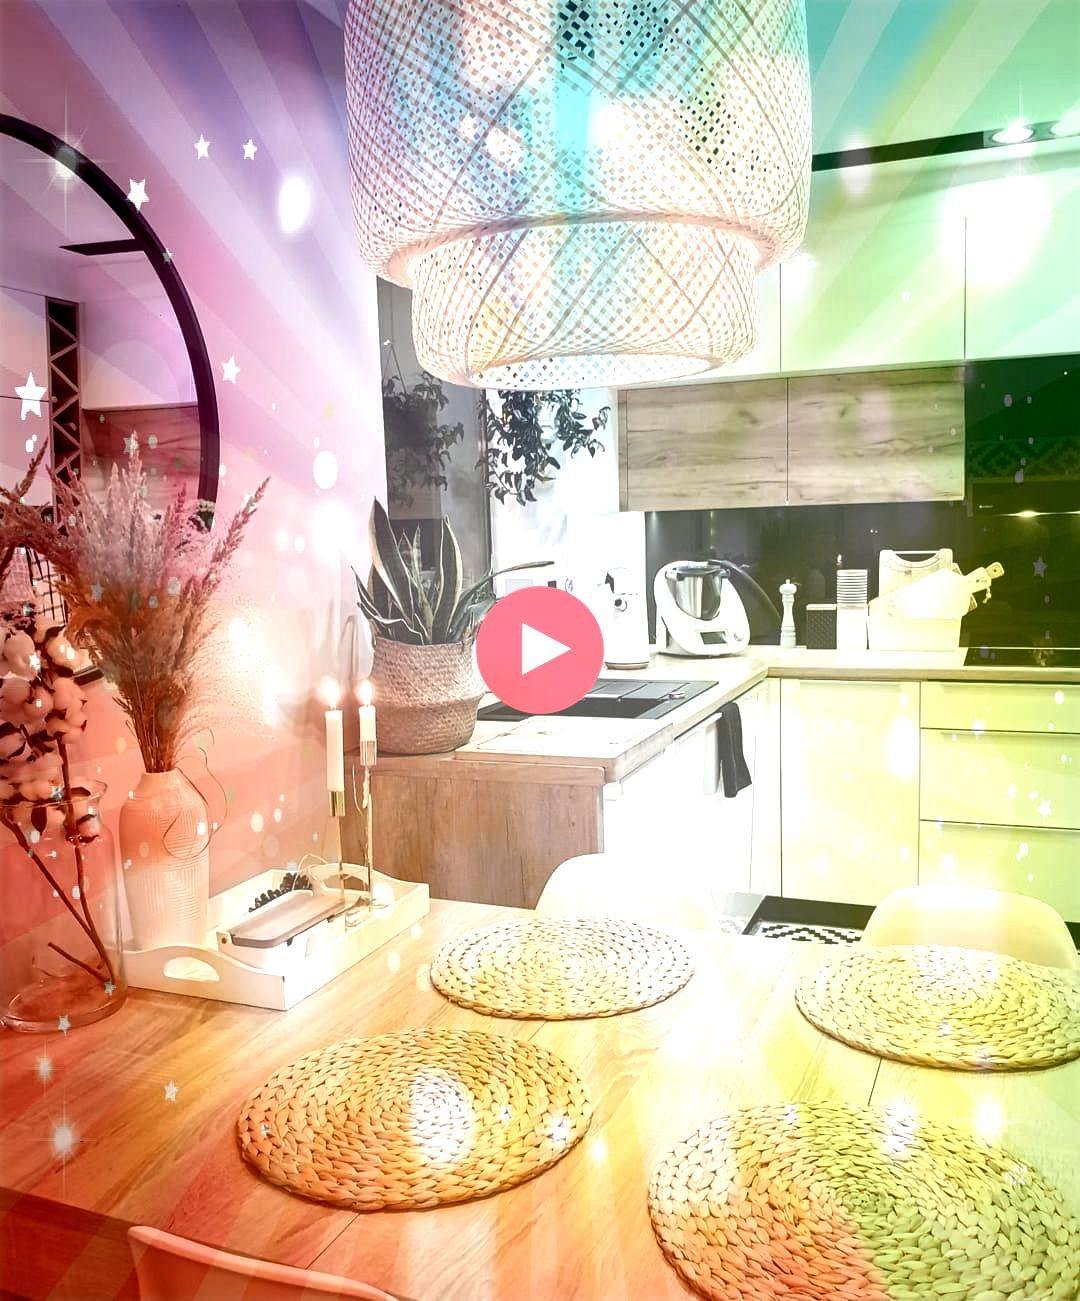 decoration If you have too much time what is being done Come on Online shoppi kitchen decoration If you have too much time what is being done Come on Online shopping beca...